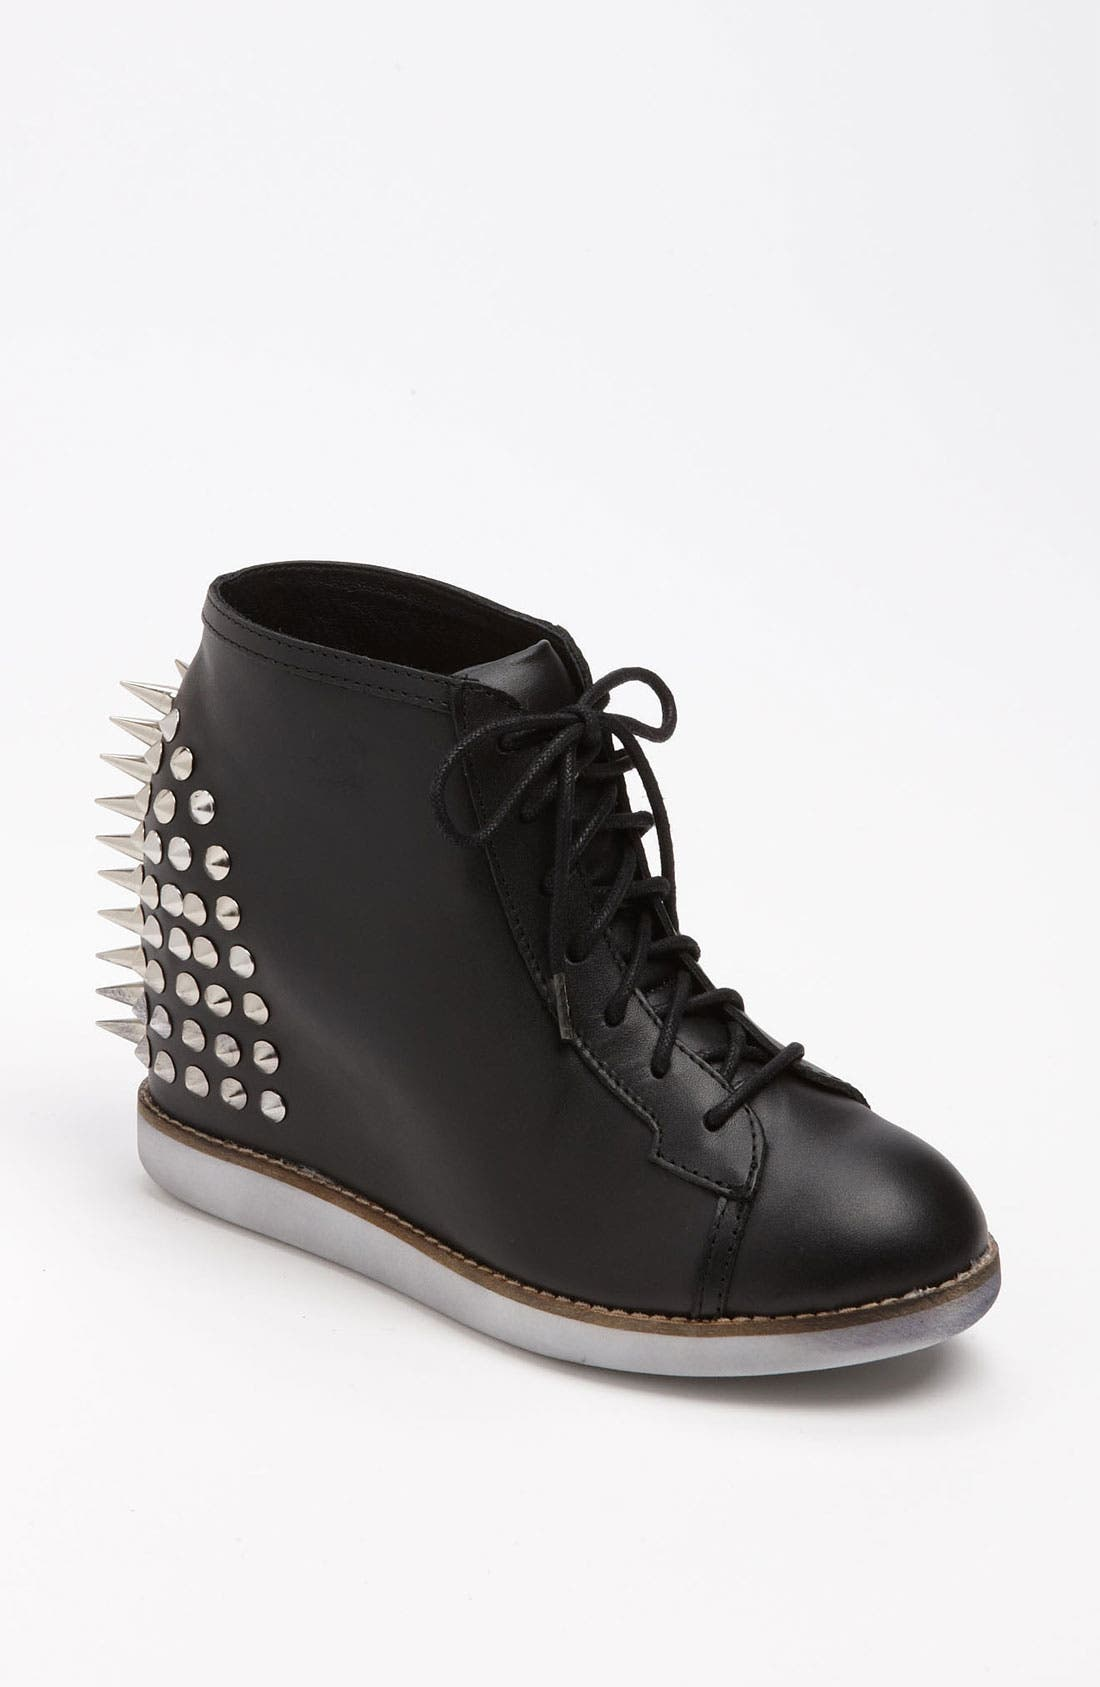 Main Image - Jeffrey Campbell 'Edea Spiked' Sneaker